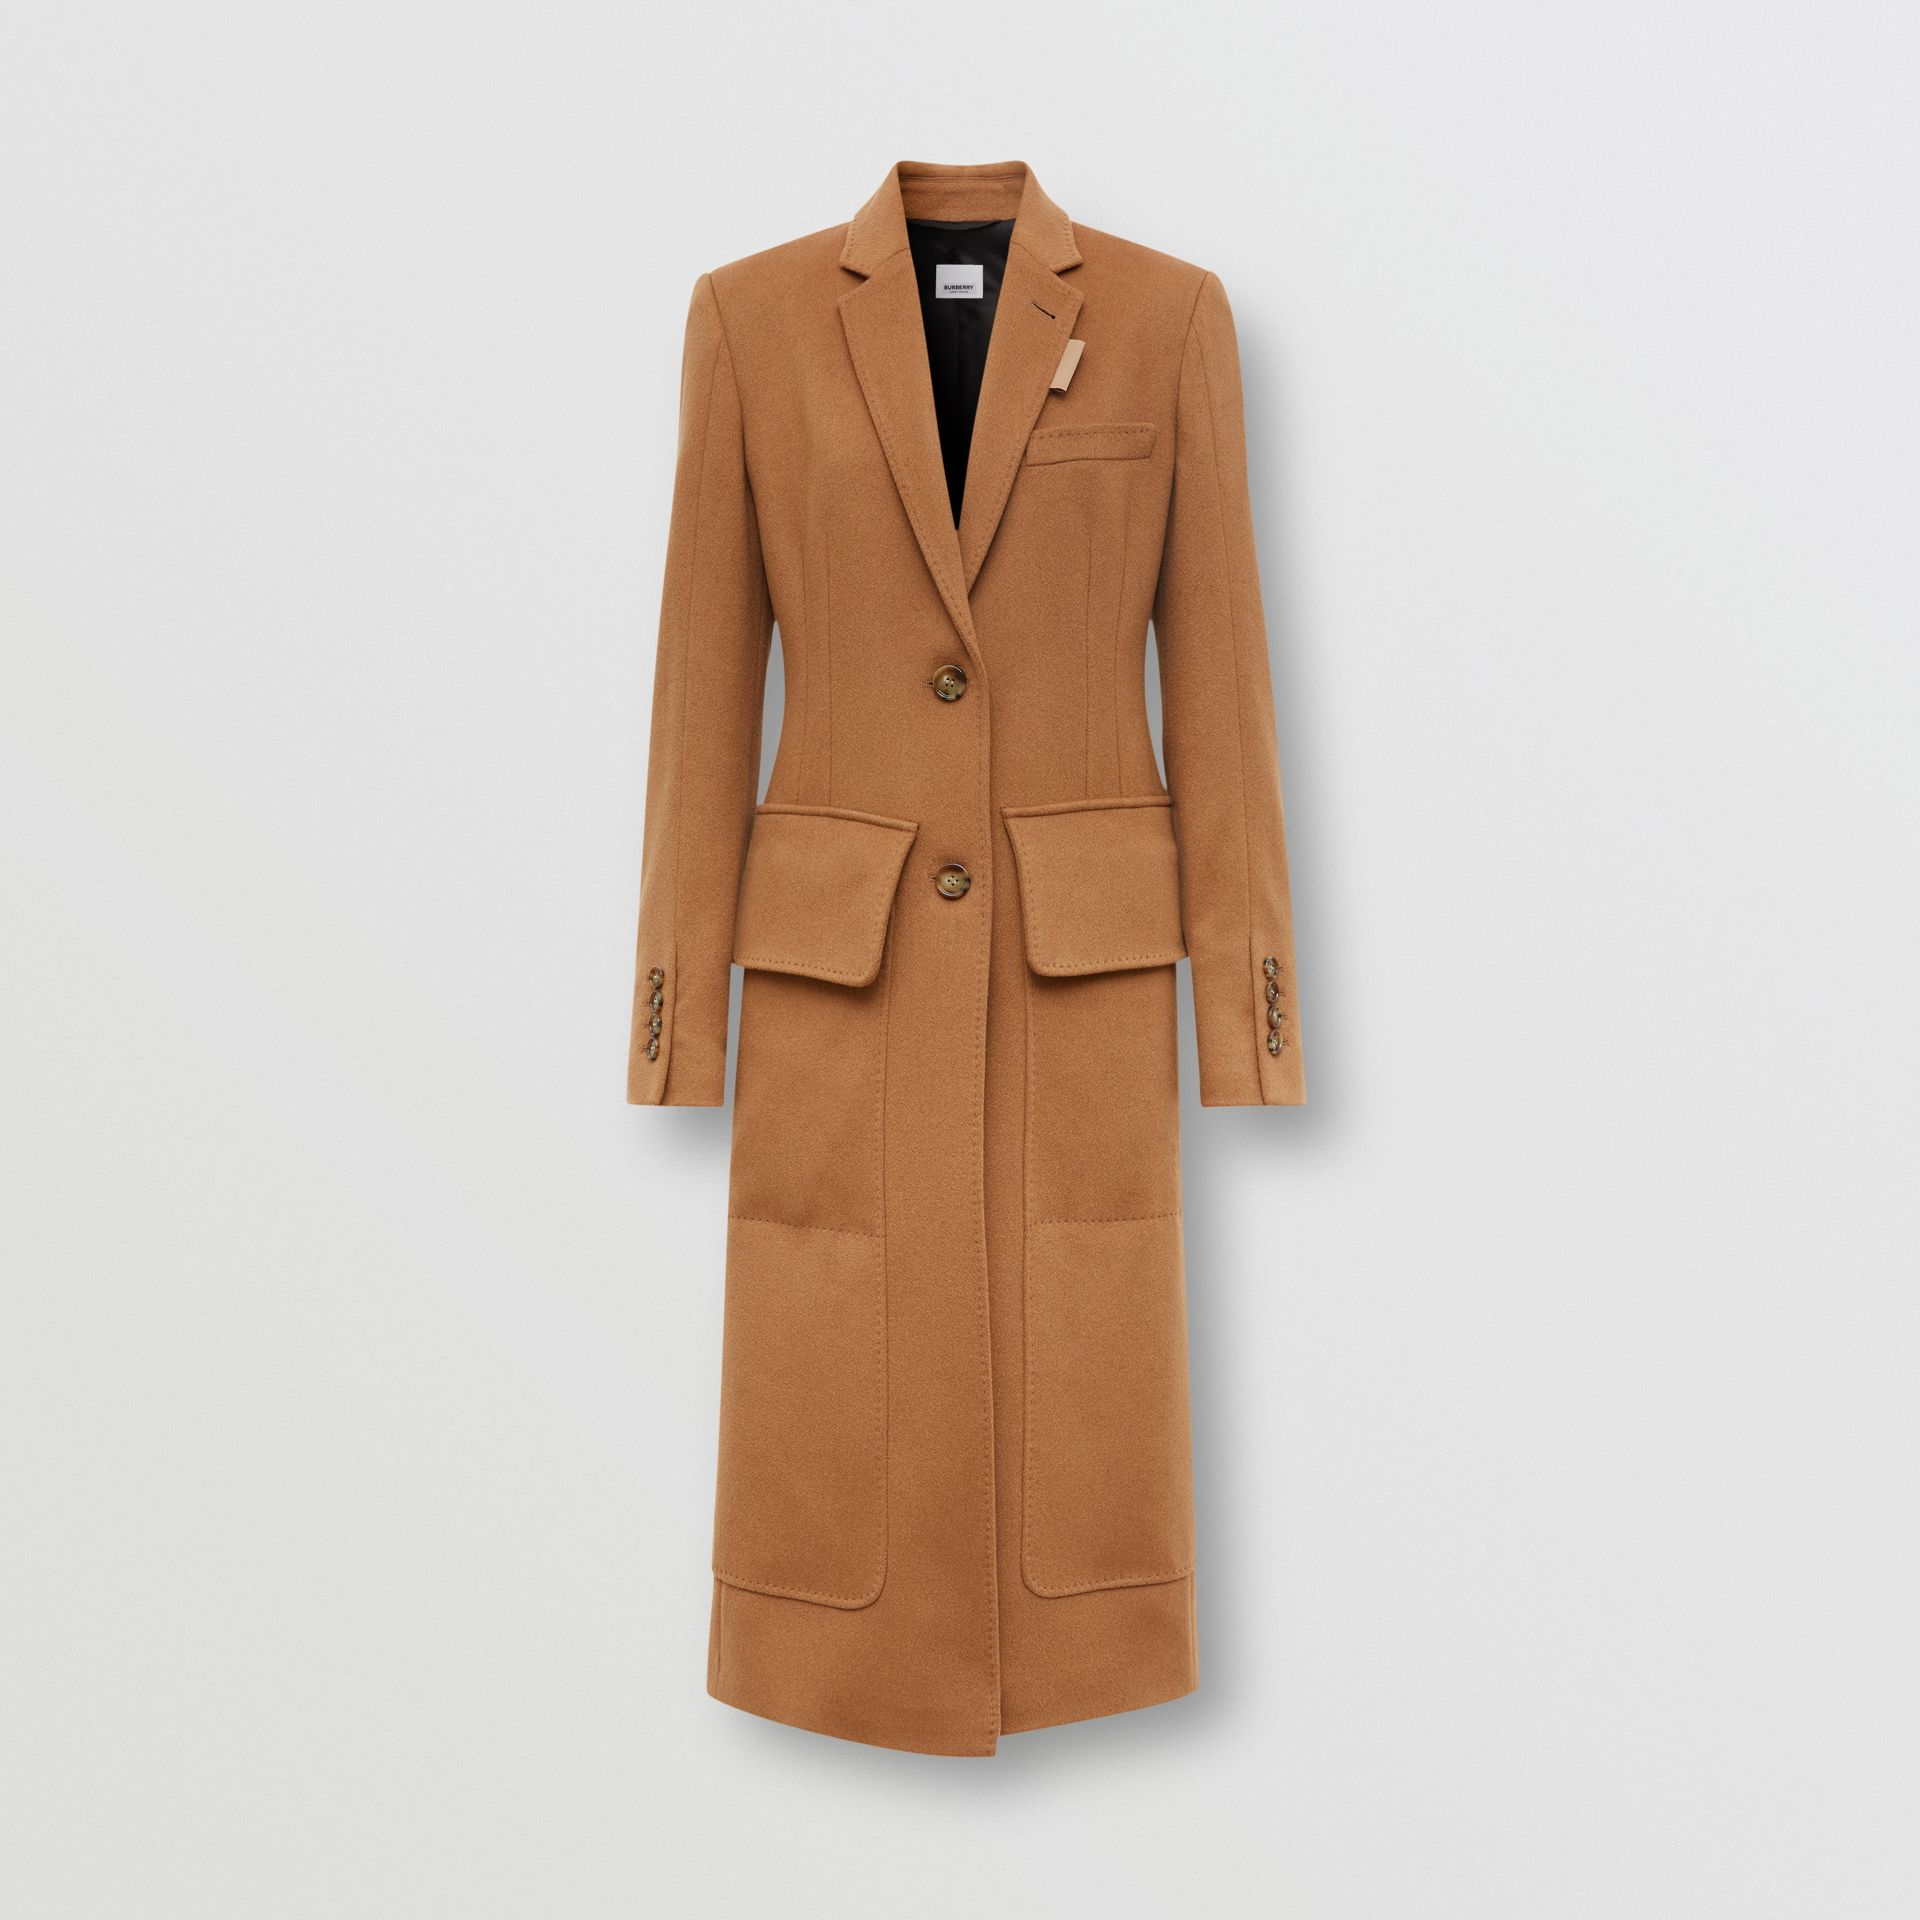 Cashmere Tailored Coat in Bronze - Women | Burberry - gallery image 3